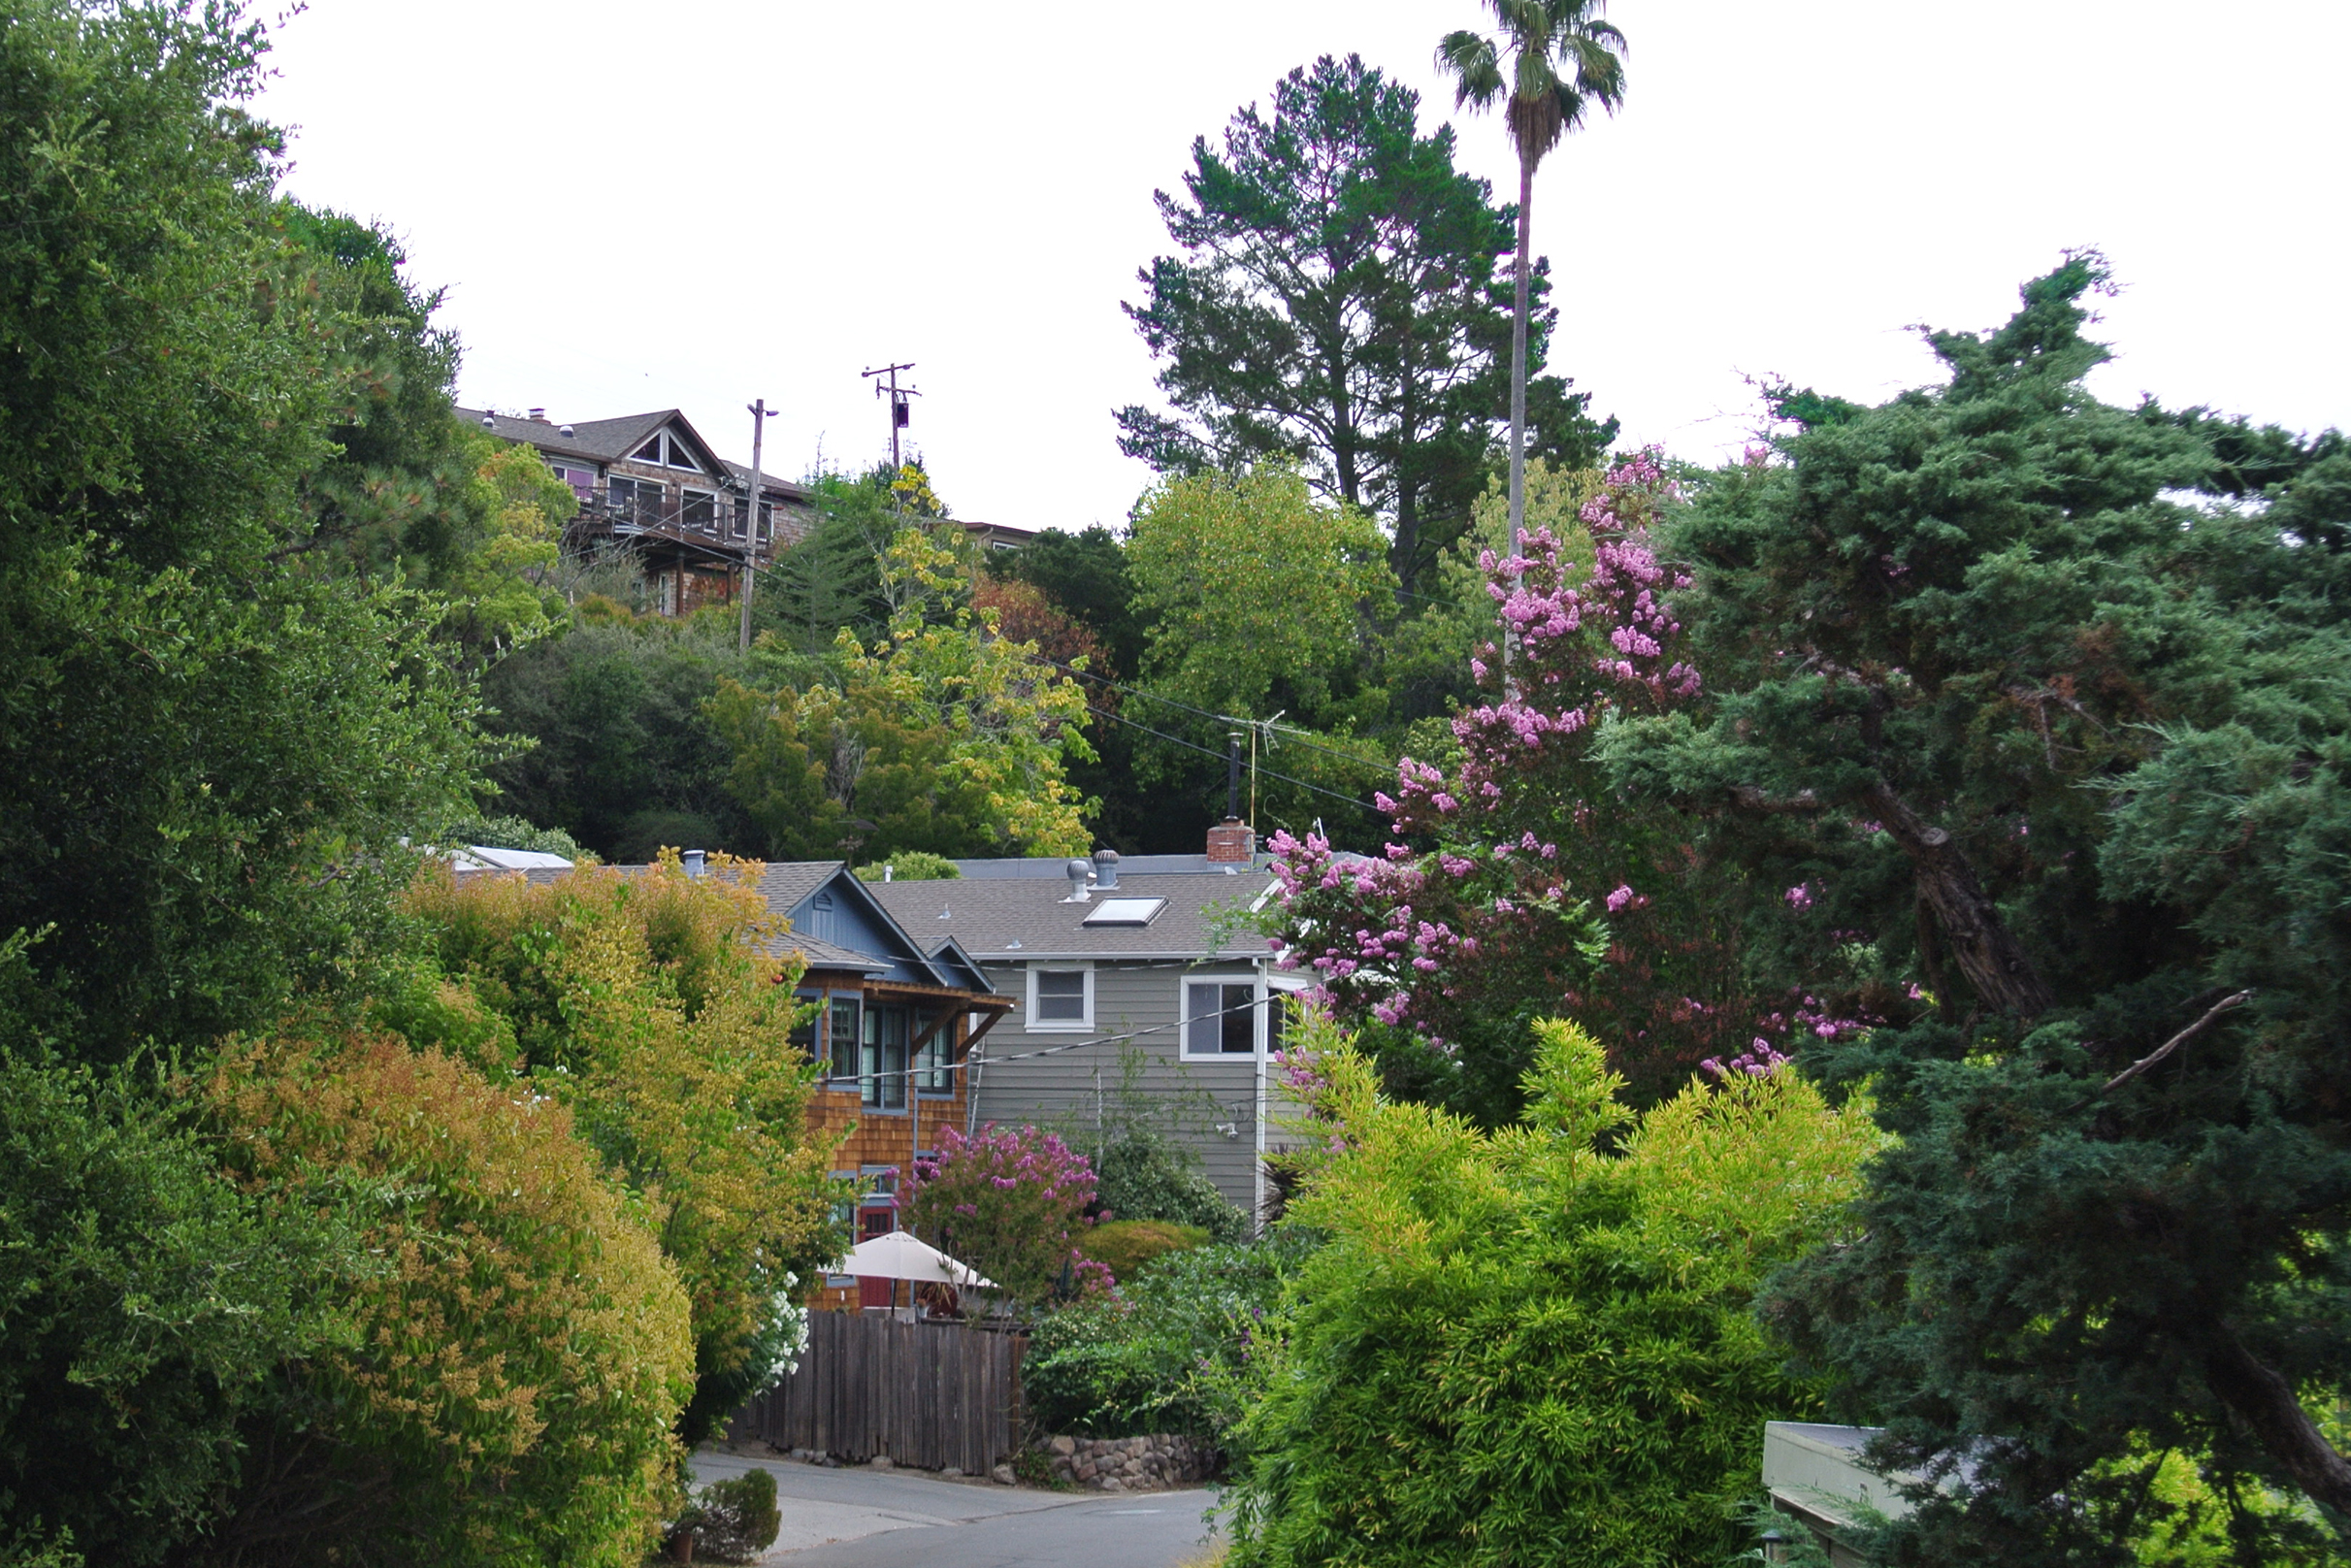 Charming little hilly streets with plenty of family atmosphere convenient to Fairfax.